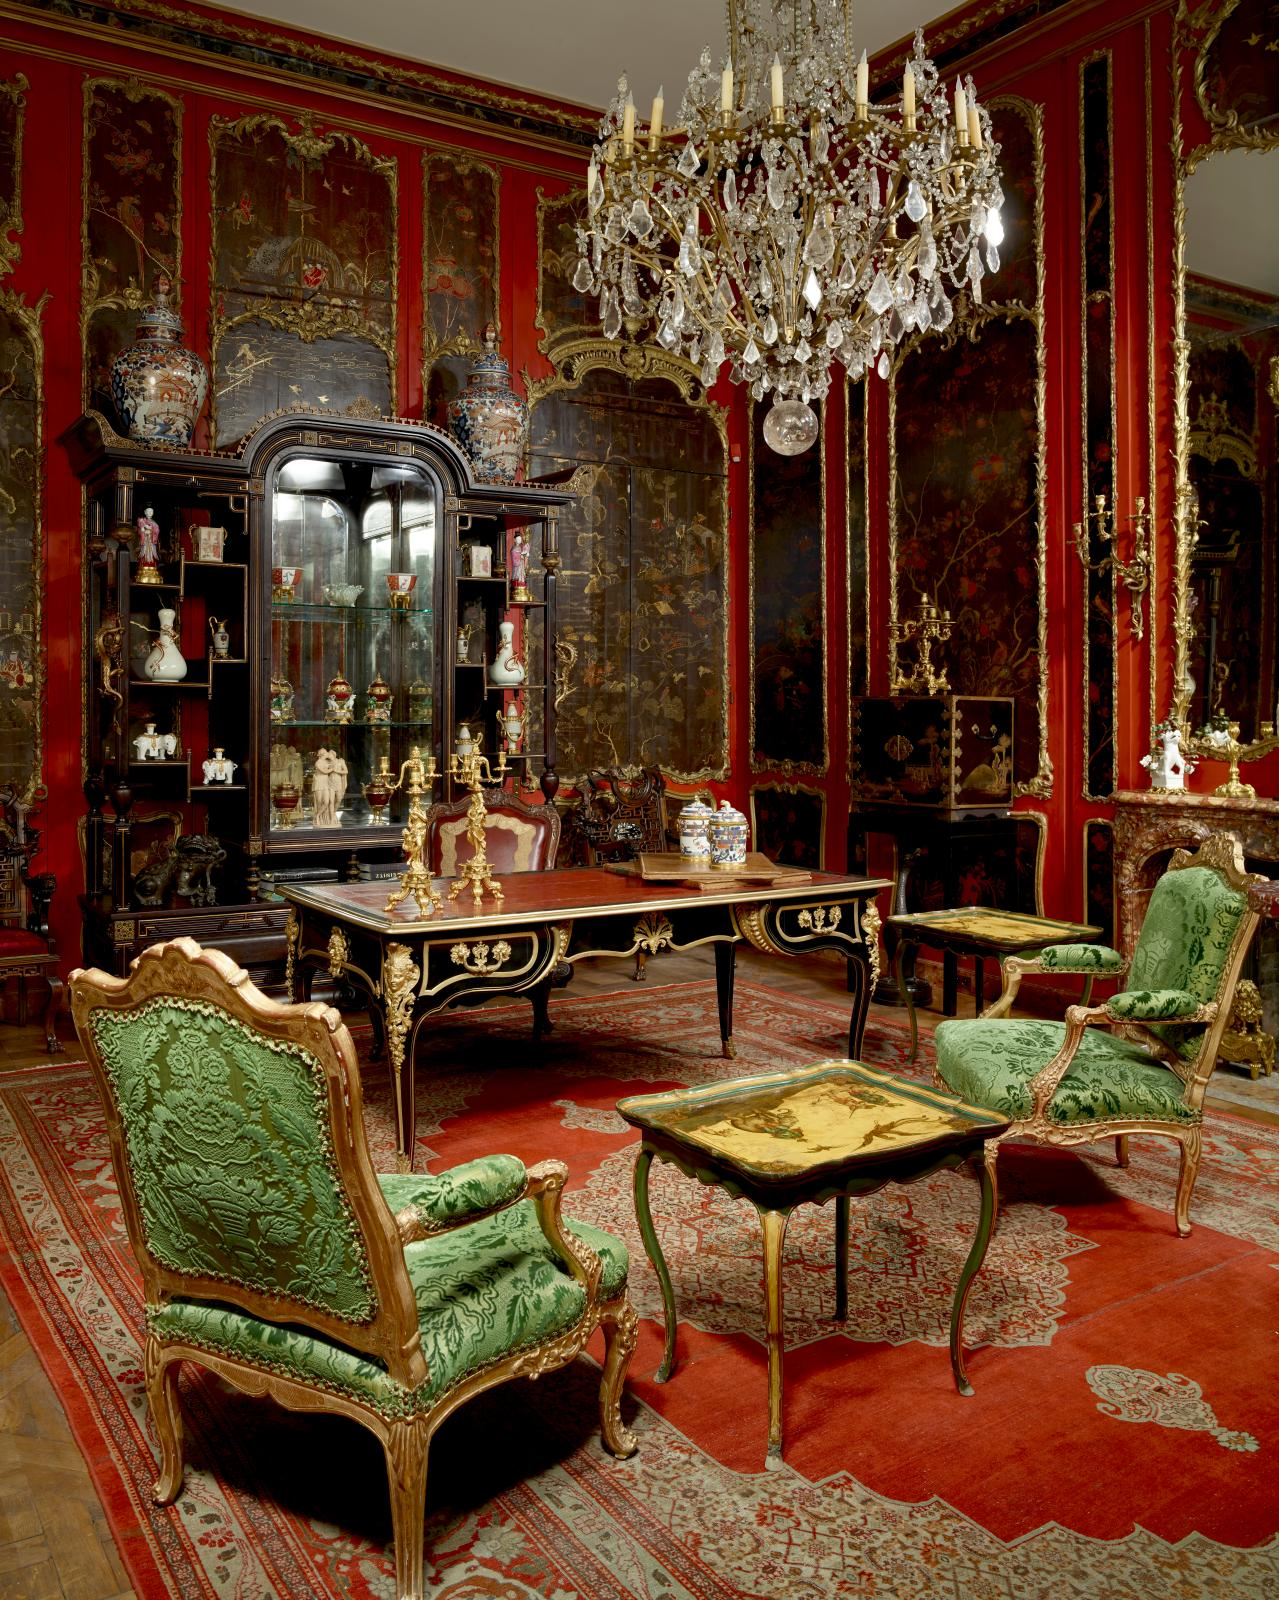 Against a background of wood panelling with mid-18th century Chinese lacquer decorations from the Hôtel de Boisgelin, a desk by François Lieutaud and